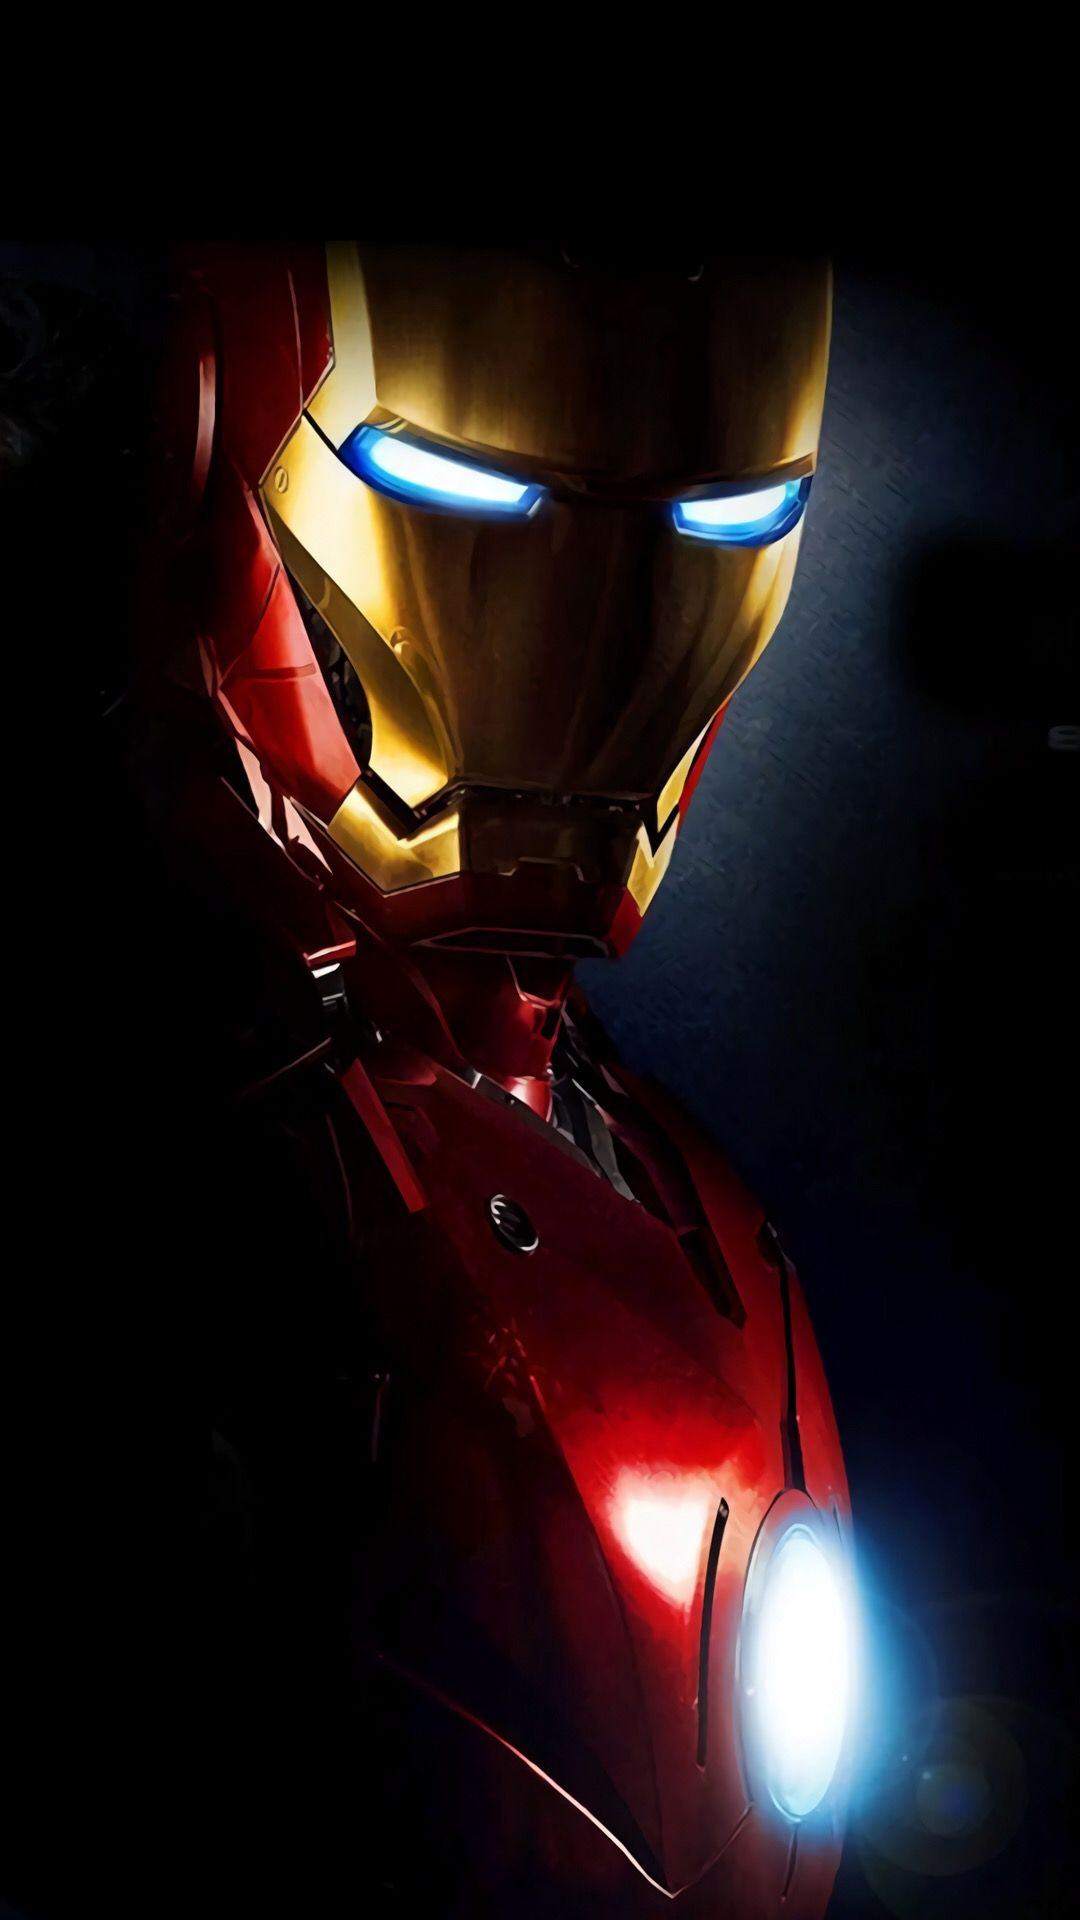 Iron Man Iron Man Hd Wallpaper Iron Man Wallpaper Iron Man Art